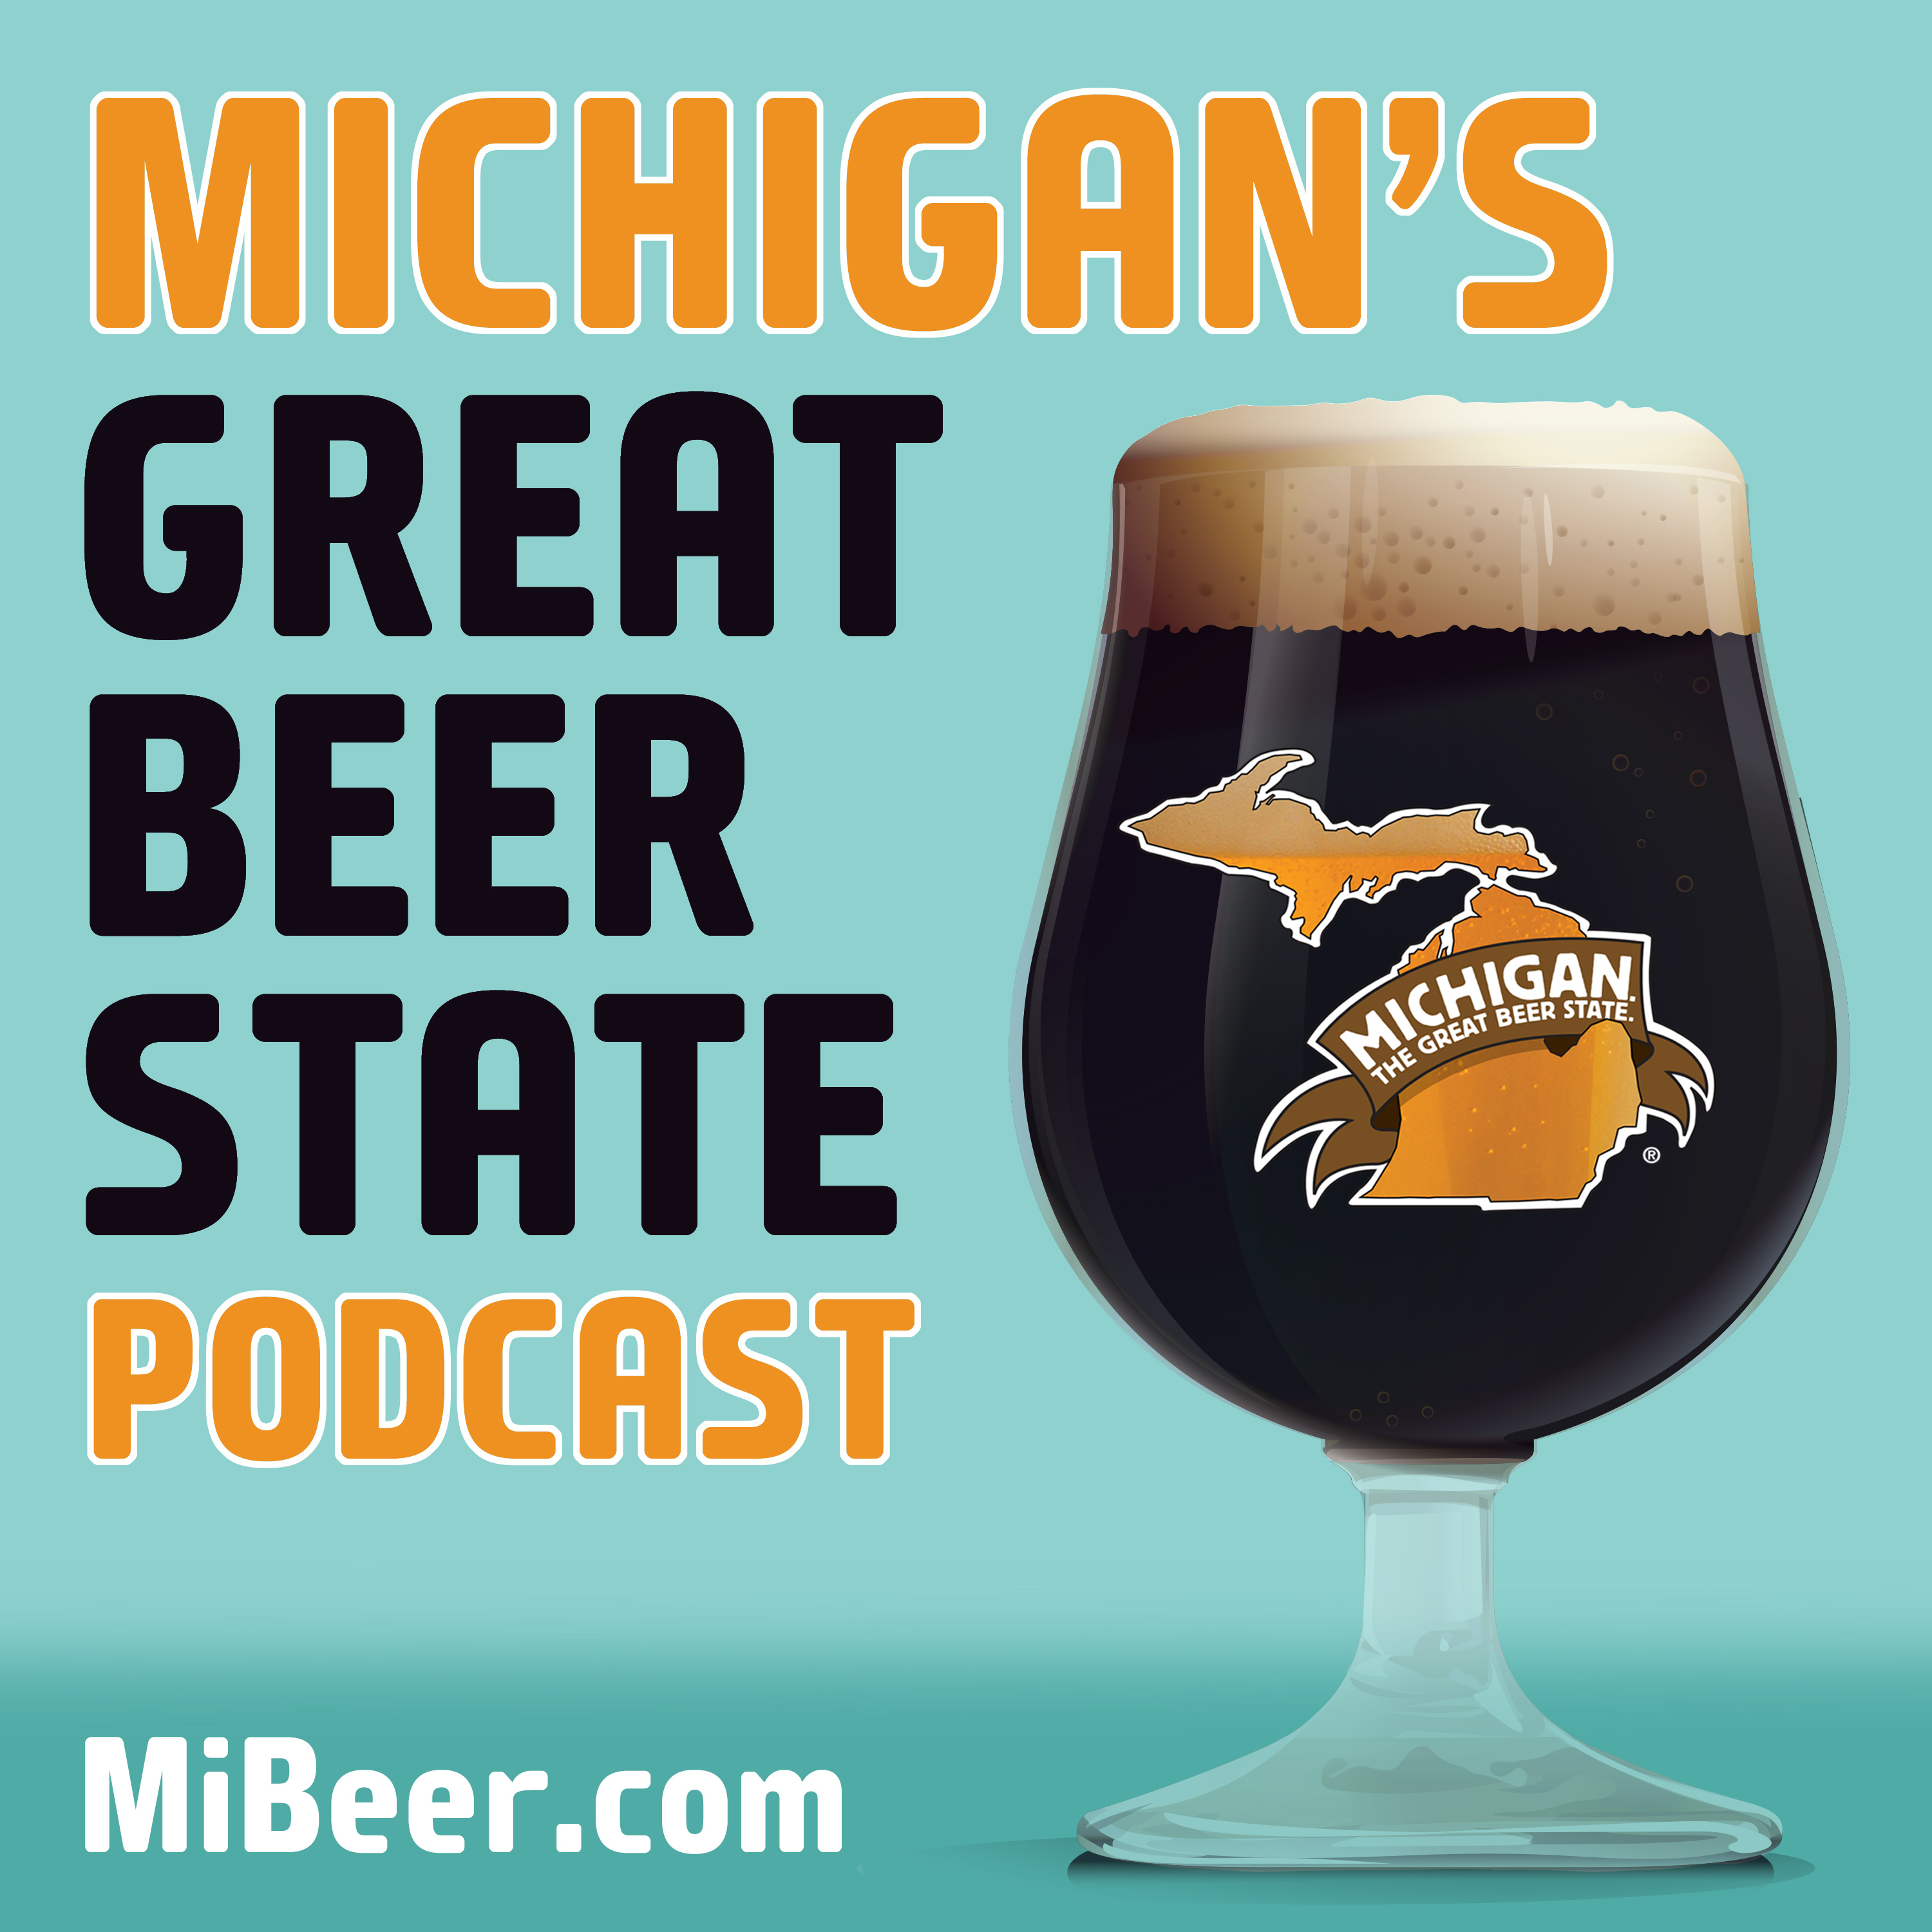 Michigan's Great Beer State Podcast show art